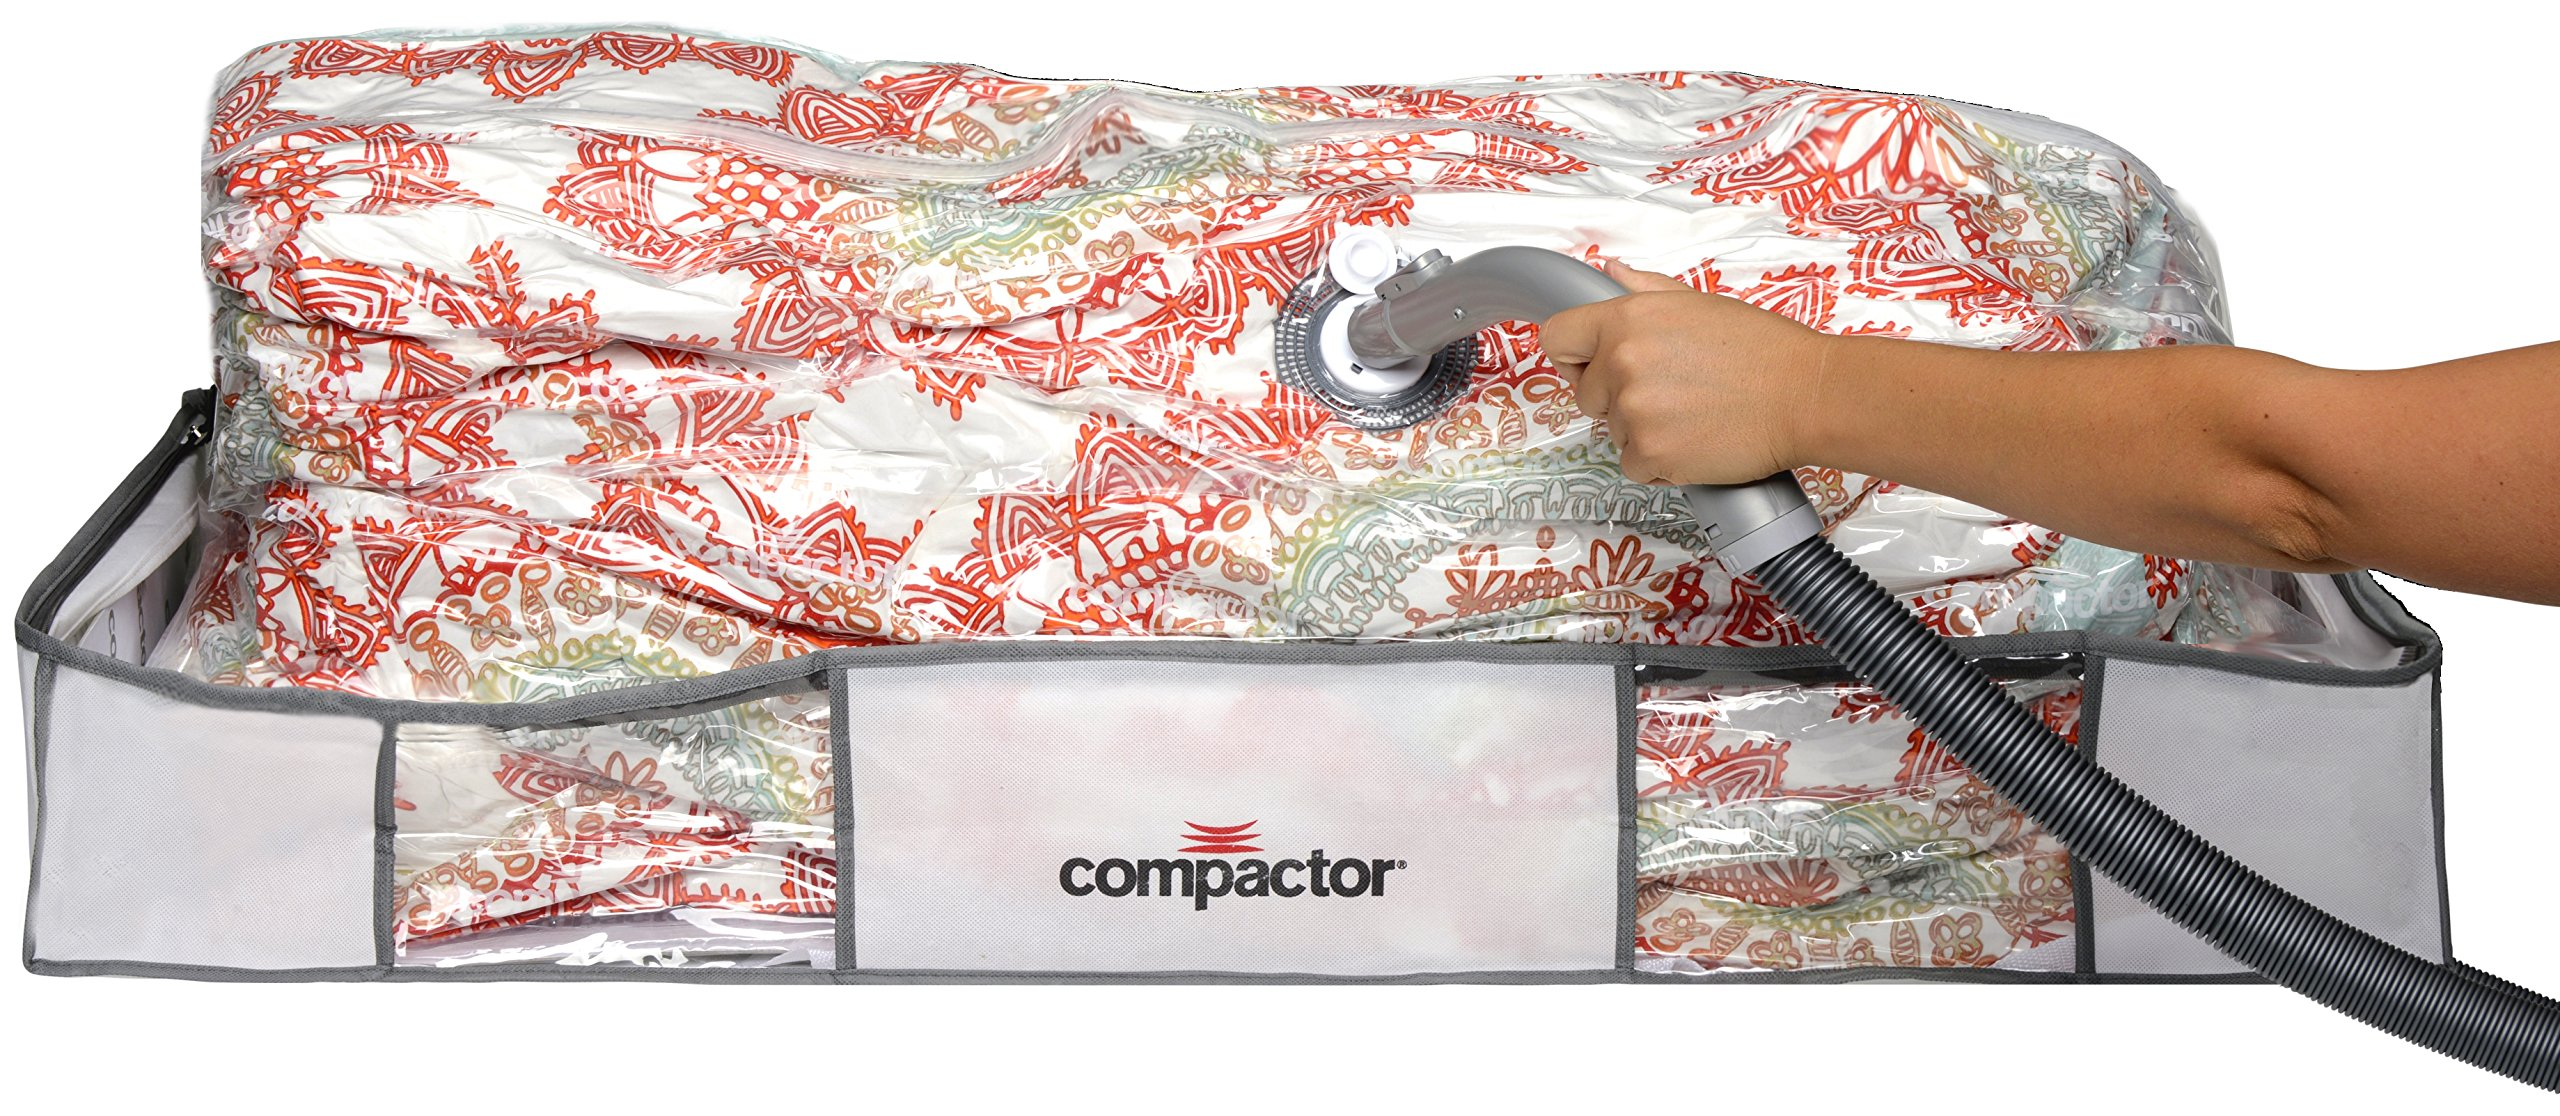 Compactor Classic Space Saver Vacuum Storage Under Bed Solution Vacuum Bag to protect Clothes, Pillows, Duvets, Comforters, Blankets - Extra Large XL (41x18x6)